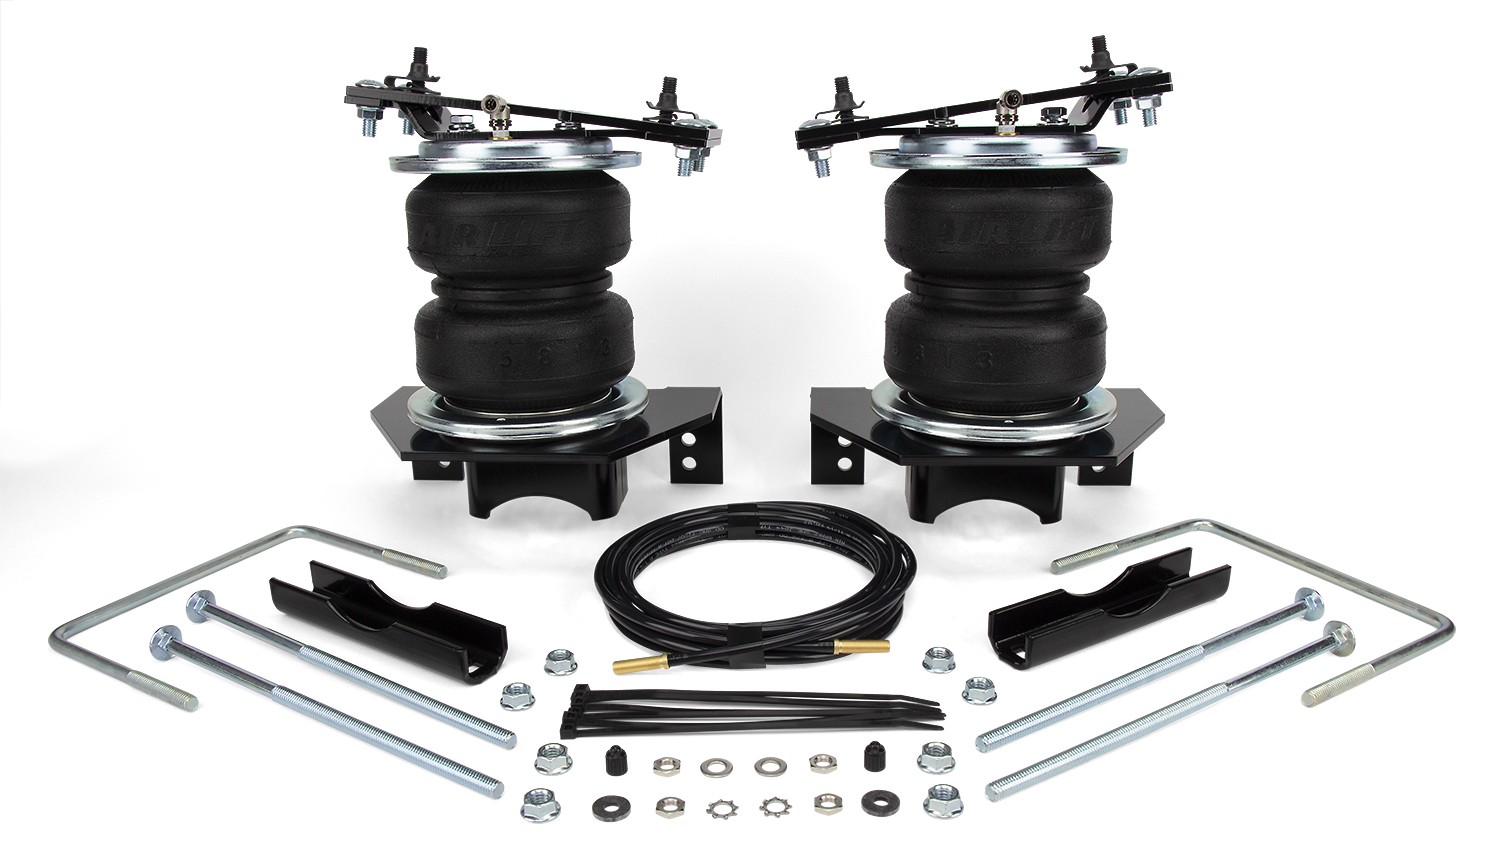 LoadLifter 5000 Ultimate air spring kit w/internal jounce bumper